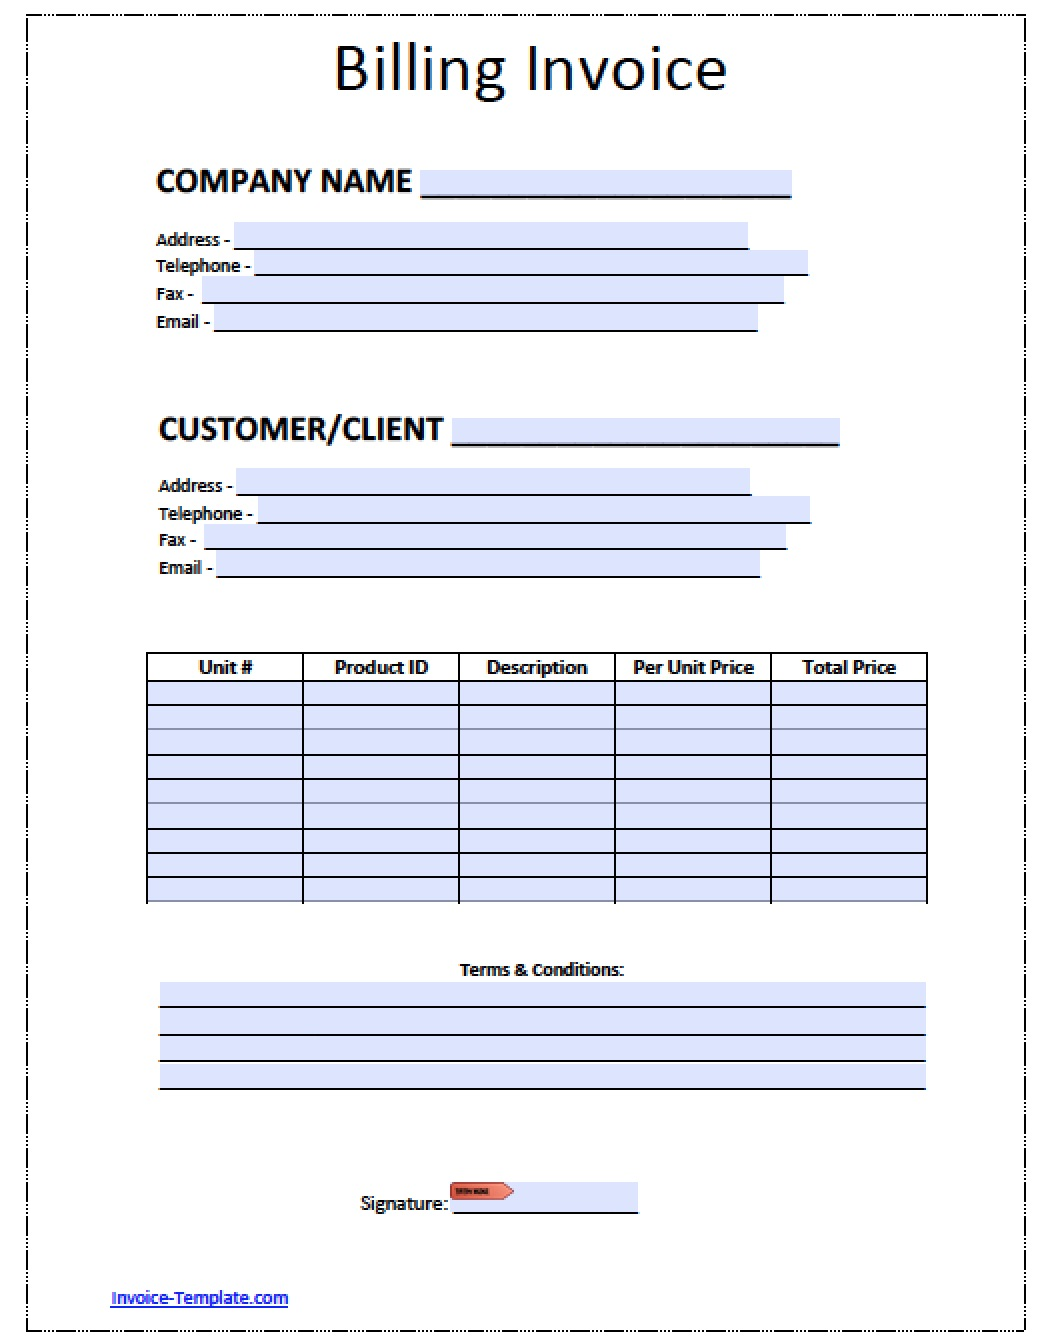 Free Billing Invoice Template Excel PDF Word Doc - Word document invoice template online clothing stores